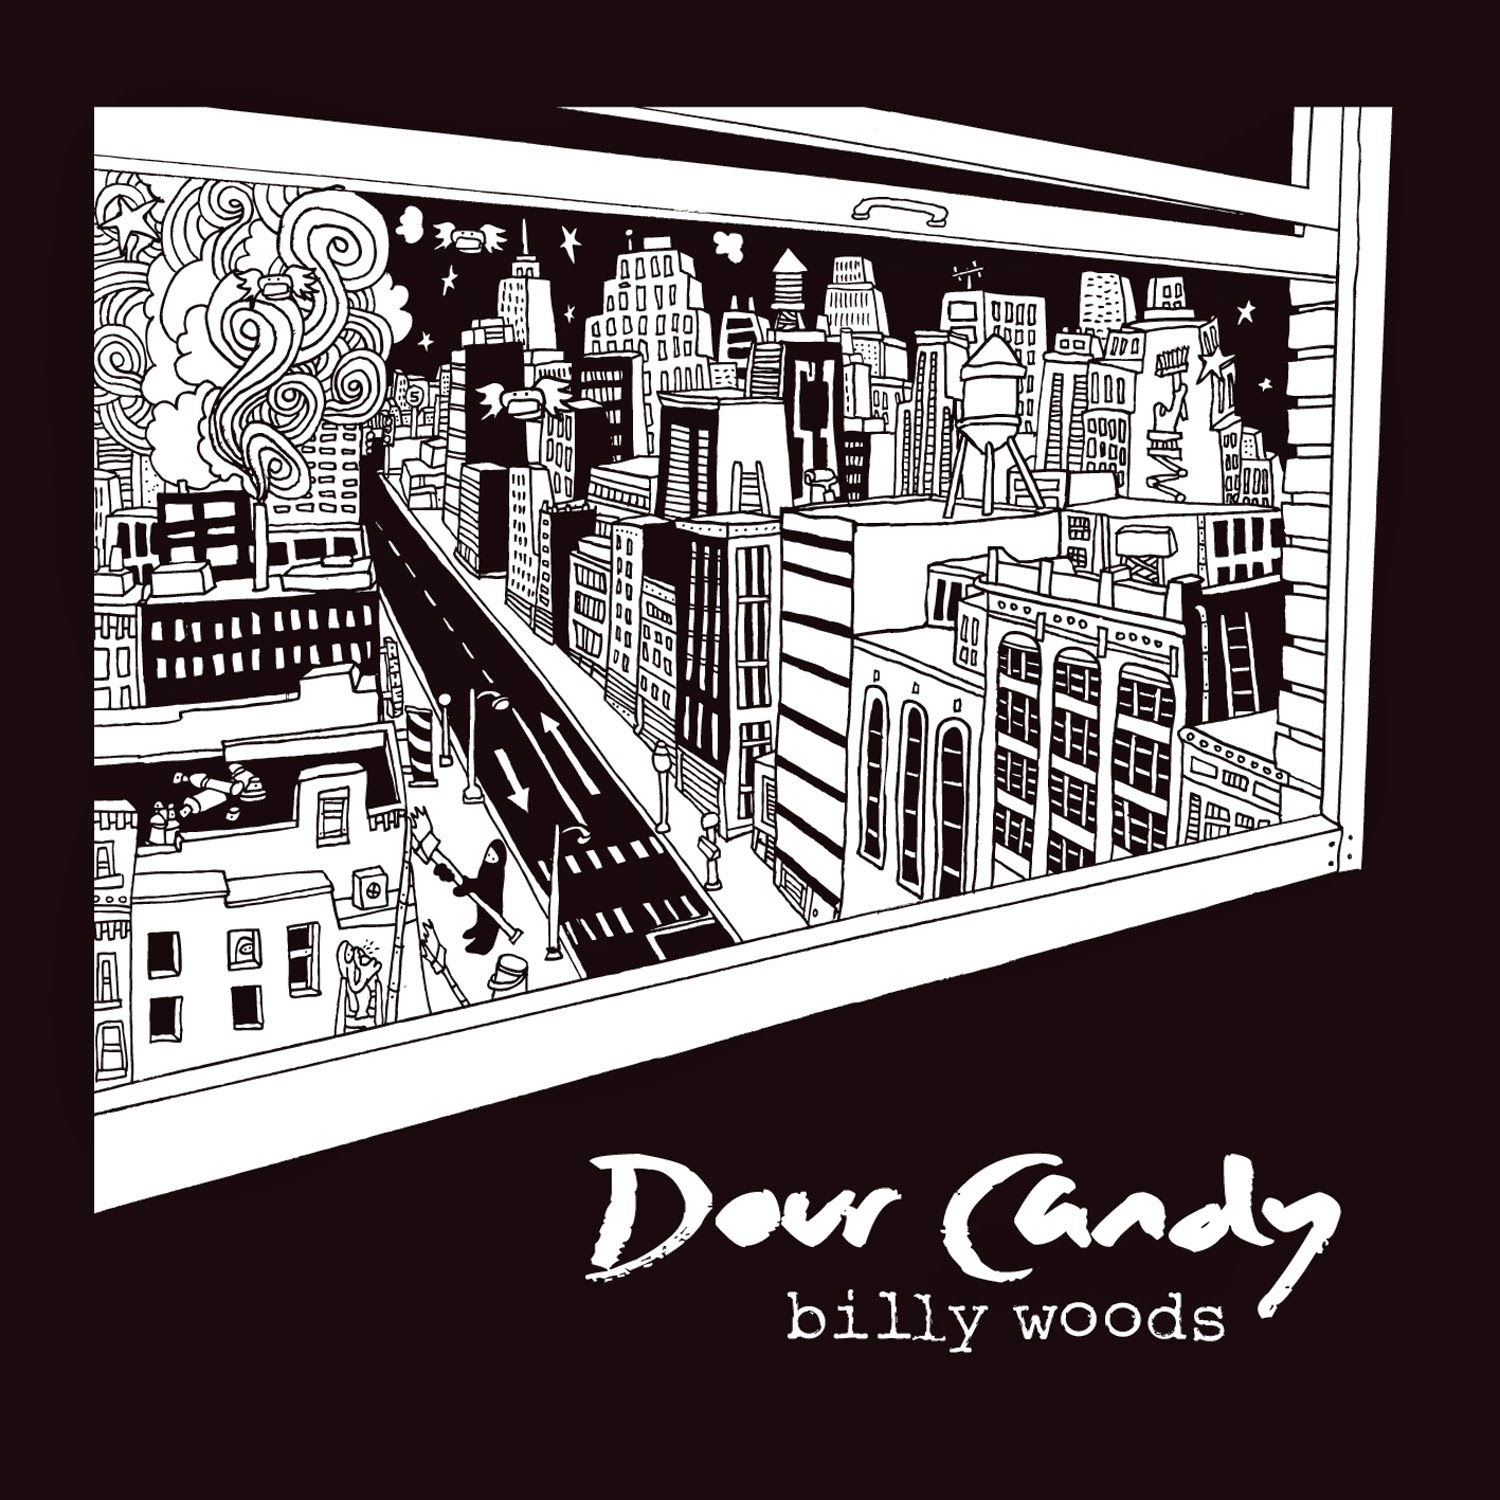 http://backwoodzstudioz.com/portfolio-item/billy-woods-dour-candy-lp-vinyl/